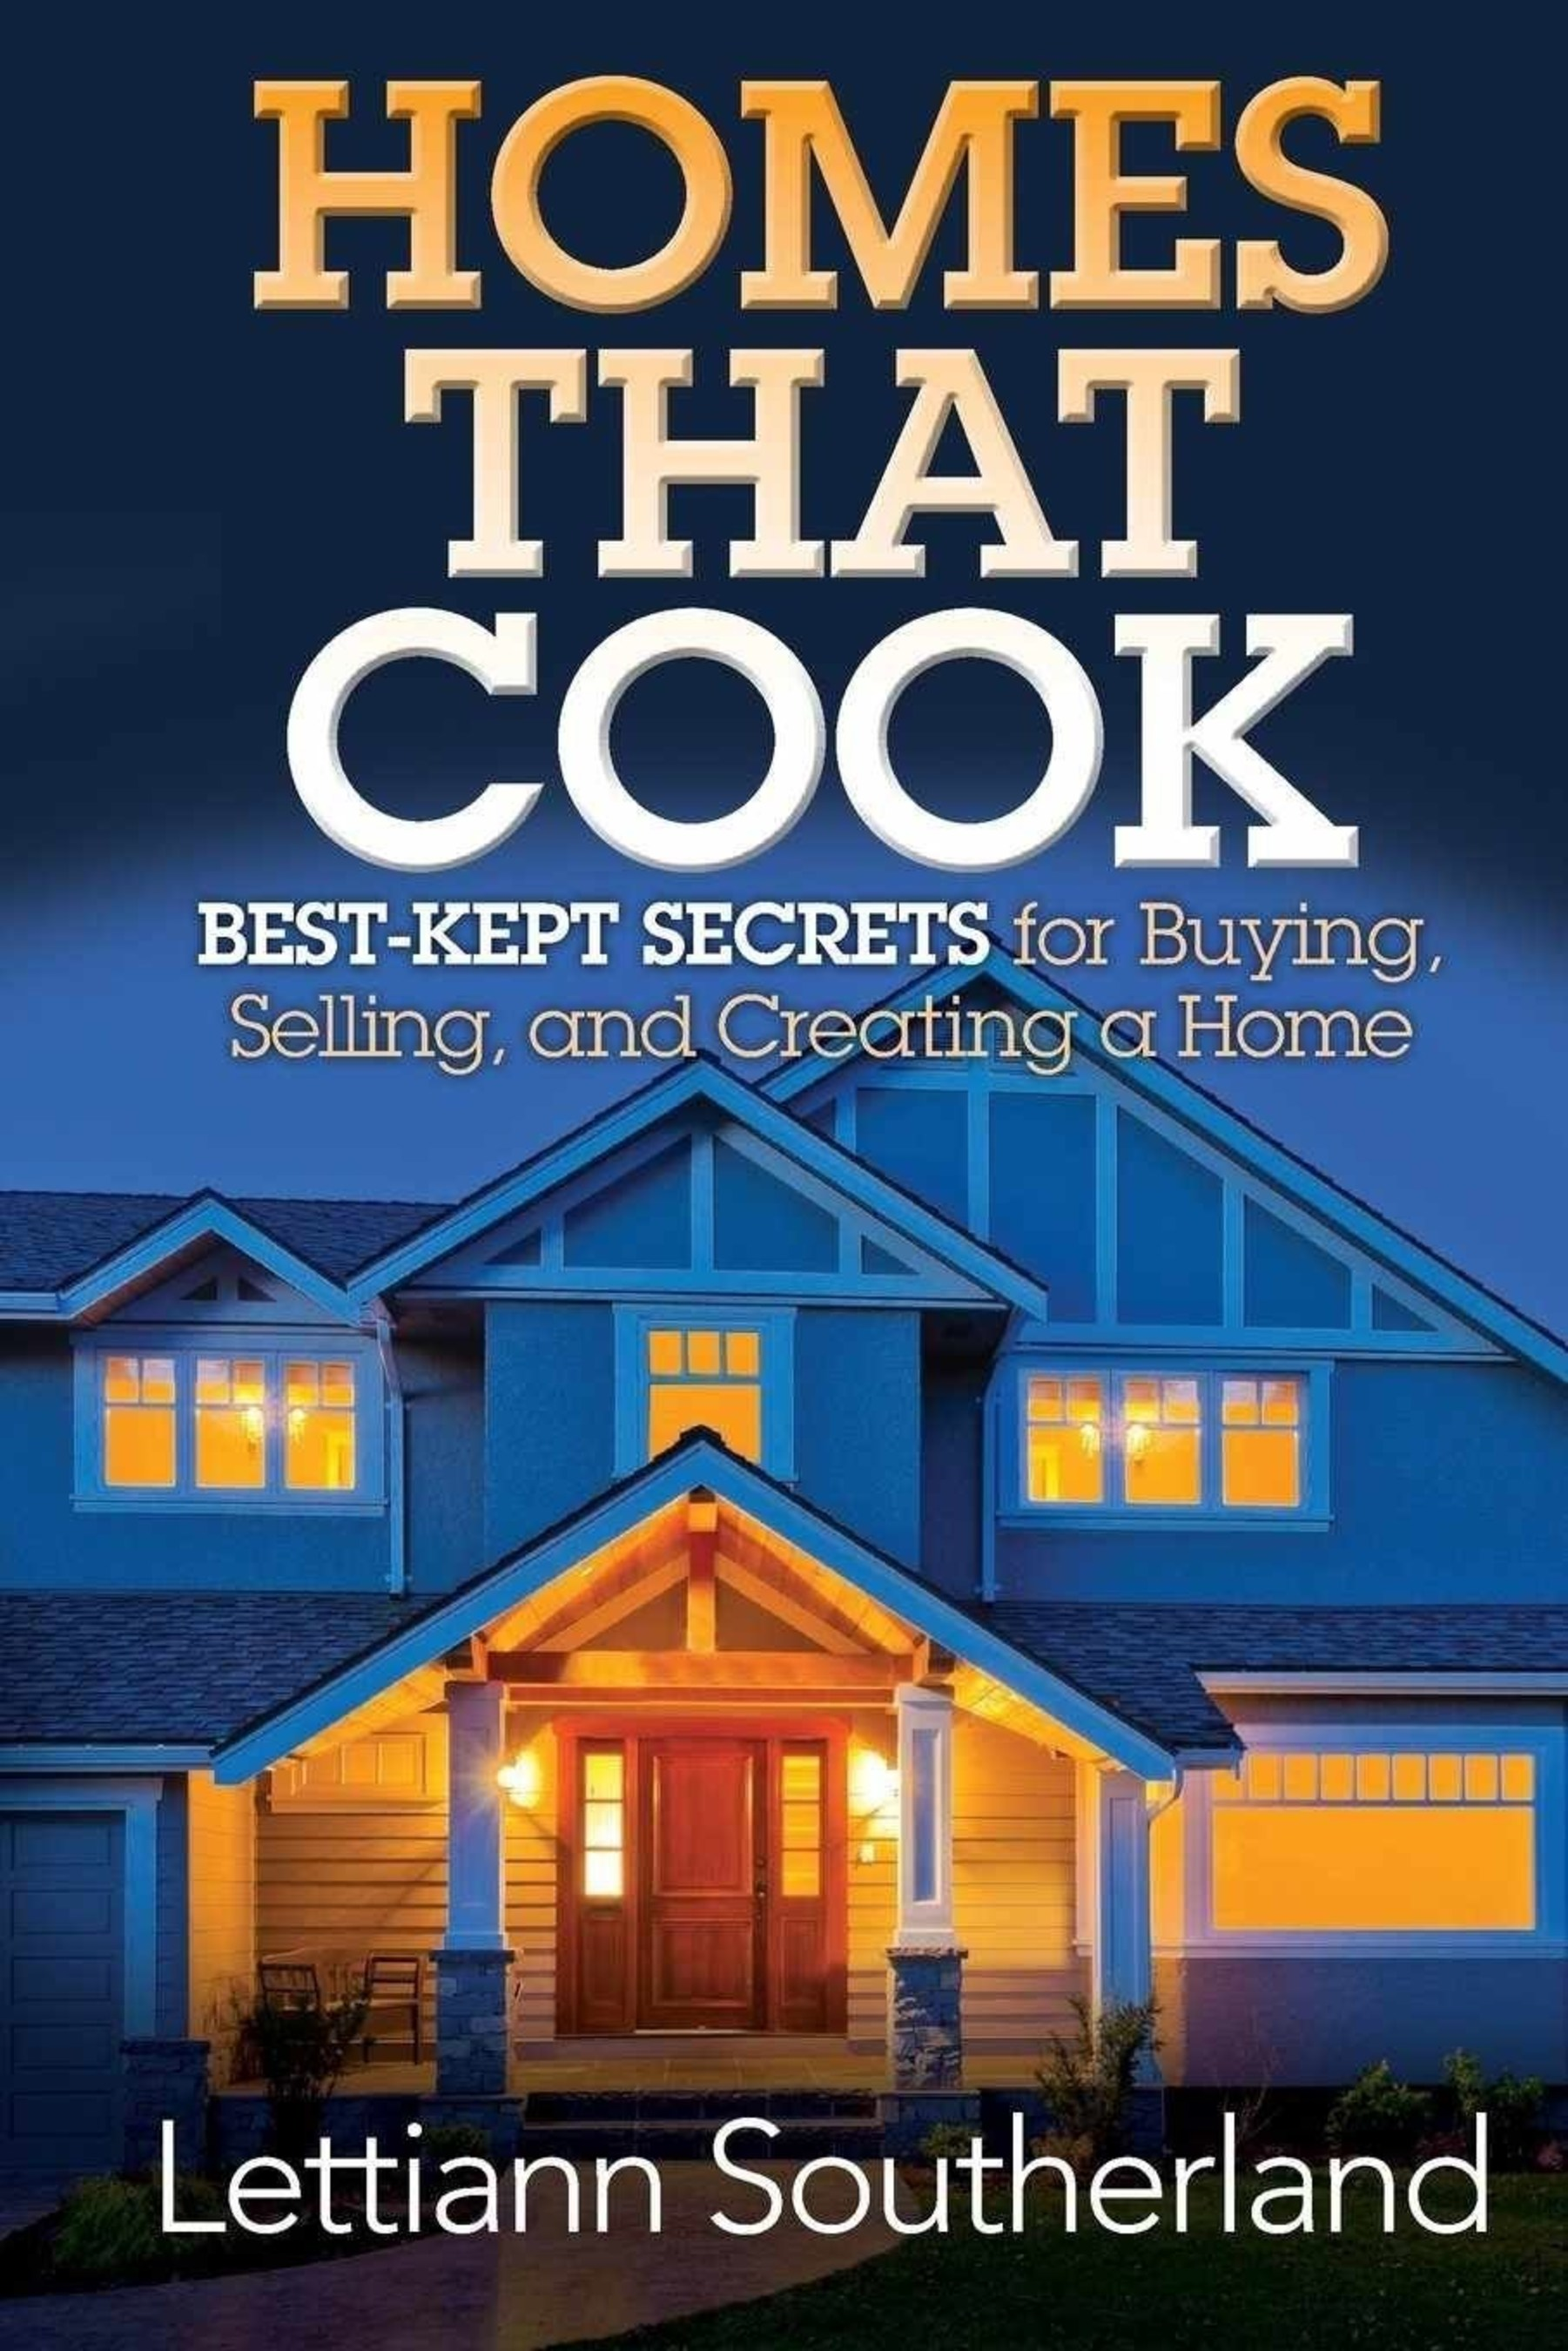 Home-Selling Expert Lettiann Southerland: 10 Tips for Selling a Home on home business tips, home inspection tips, home packing tips, home design tips, home security tips,